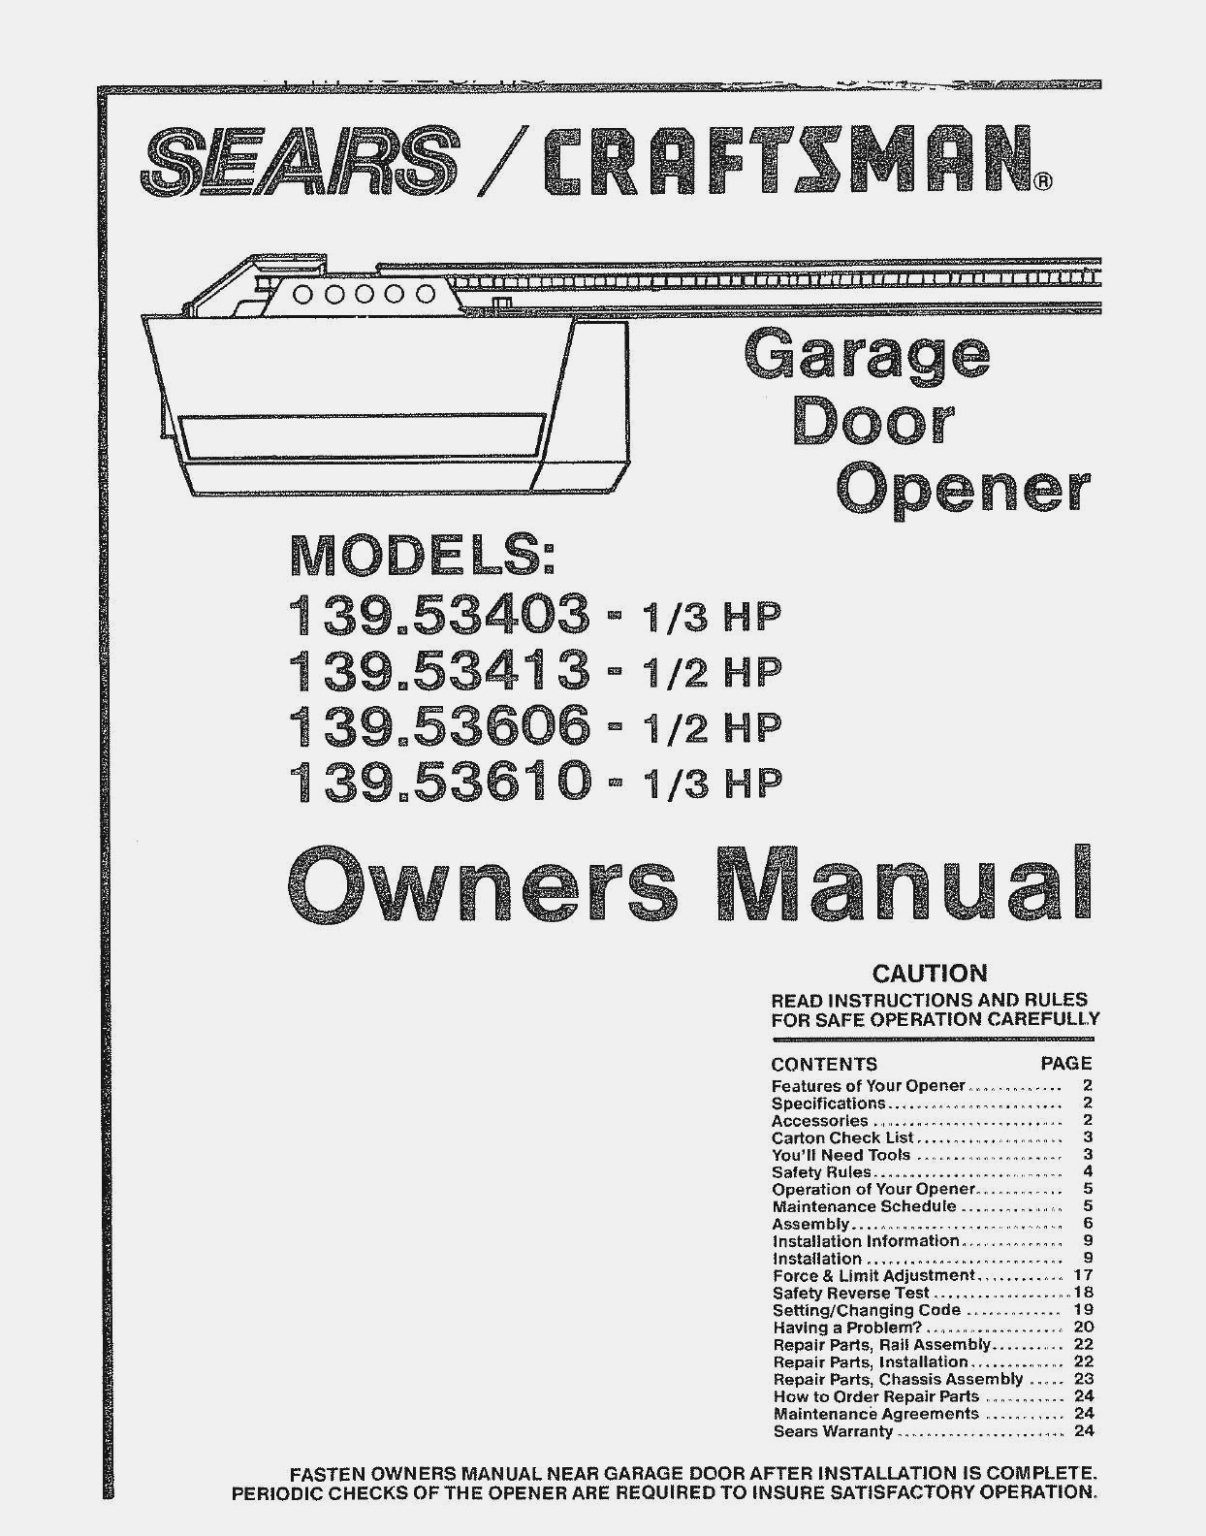 Sears Garage Door Opener Wiring | Wiring Diagram - Craftsman Garage Door Opener Sensor Wiring Diagram